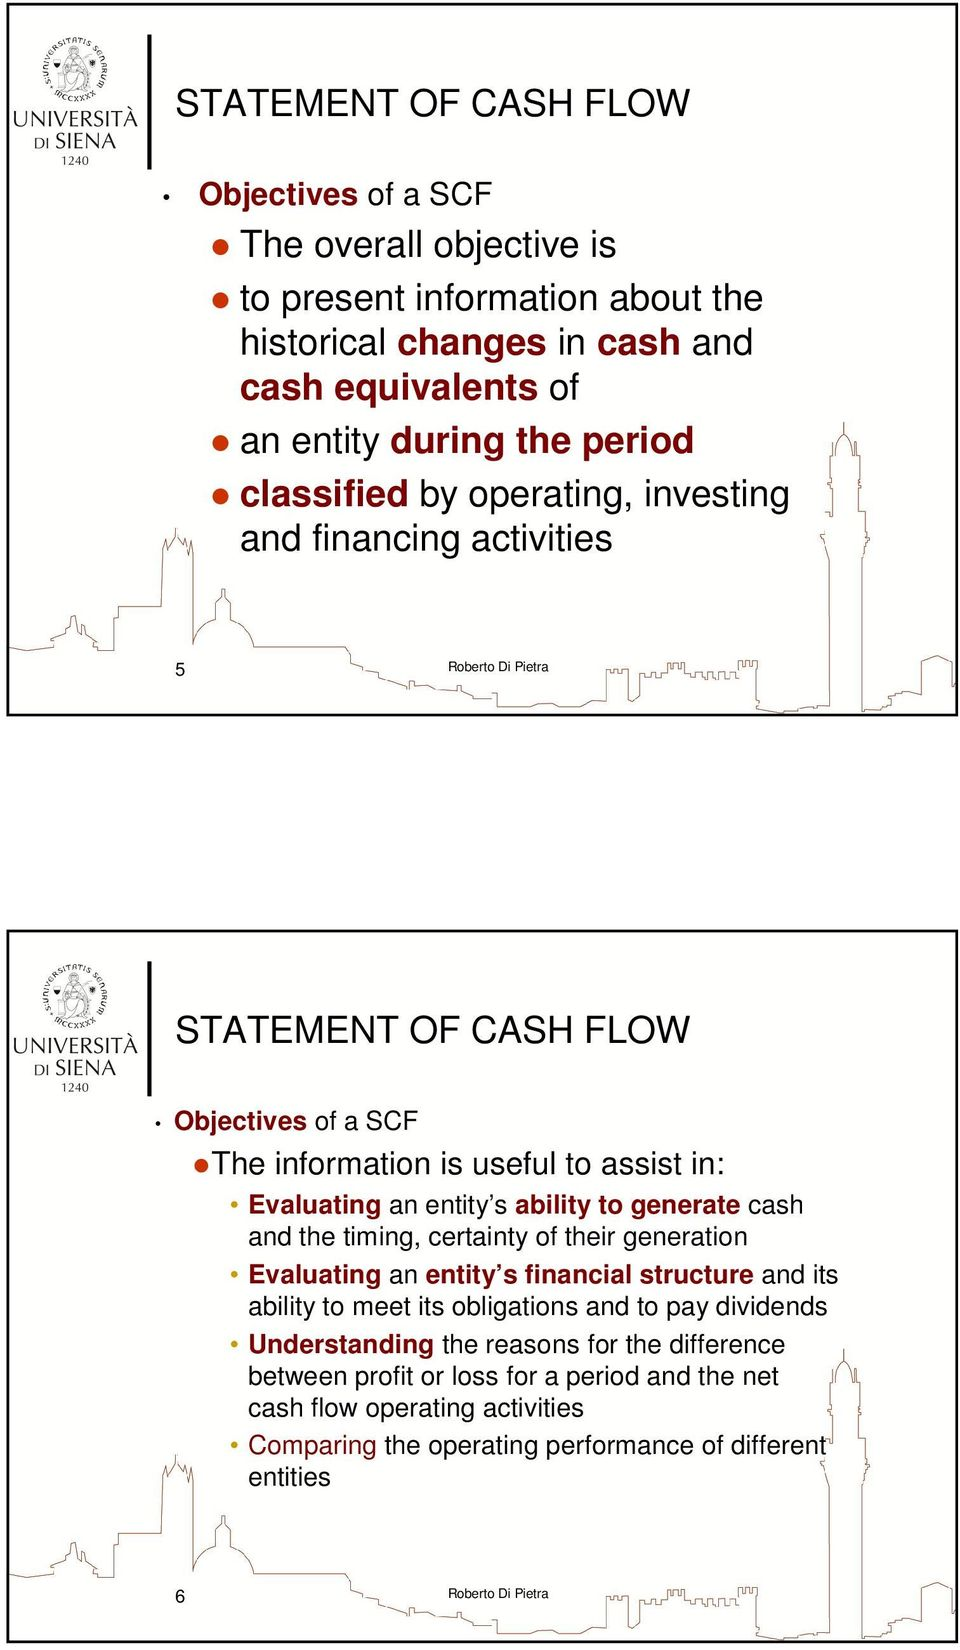 cash and the timing, certainty of their generation Evaluating an entity s financial structure and its ability to meet its obligations and to pay dividends